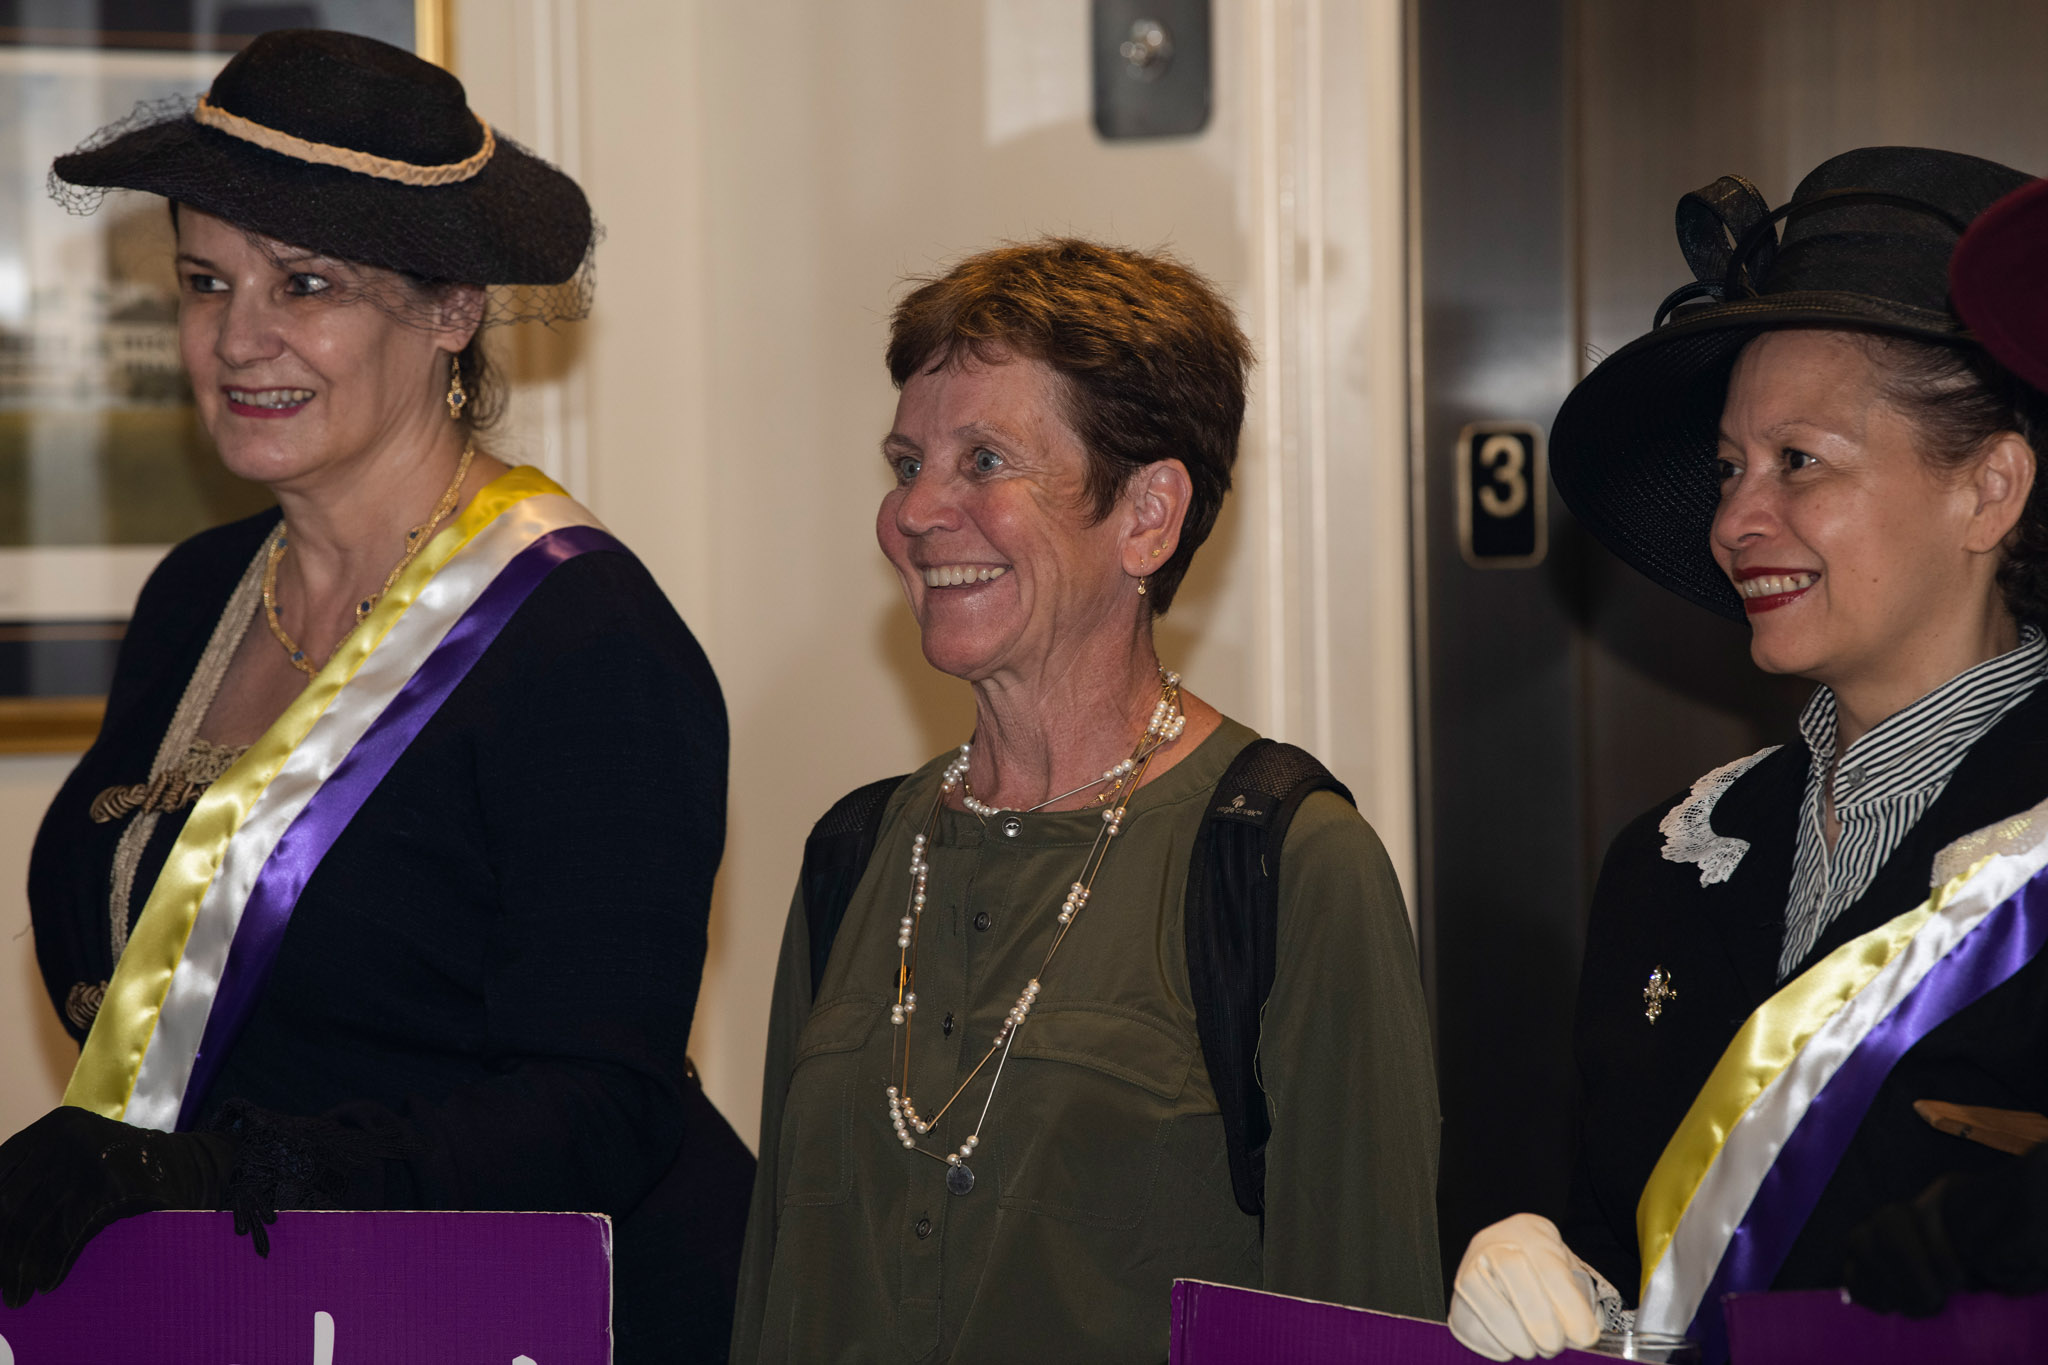 01c-Suffragist-descendant-Patsy-McDonald-surrounded-by-reenactors-Debbie-Glasser-l-and-Quinn-Jones-